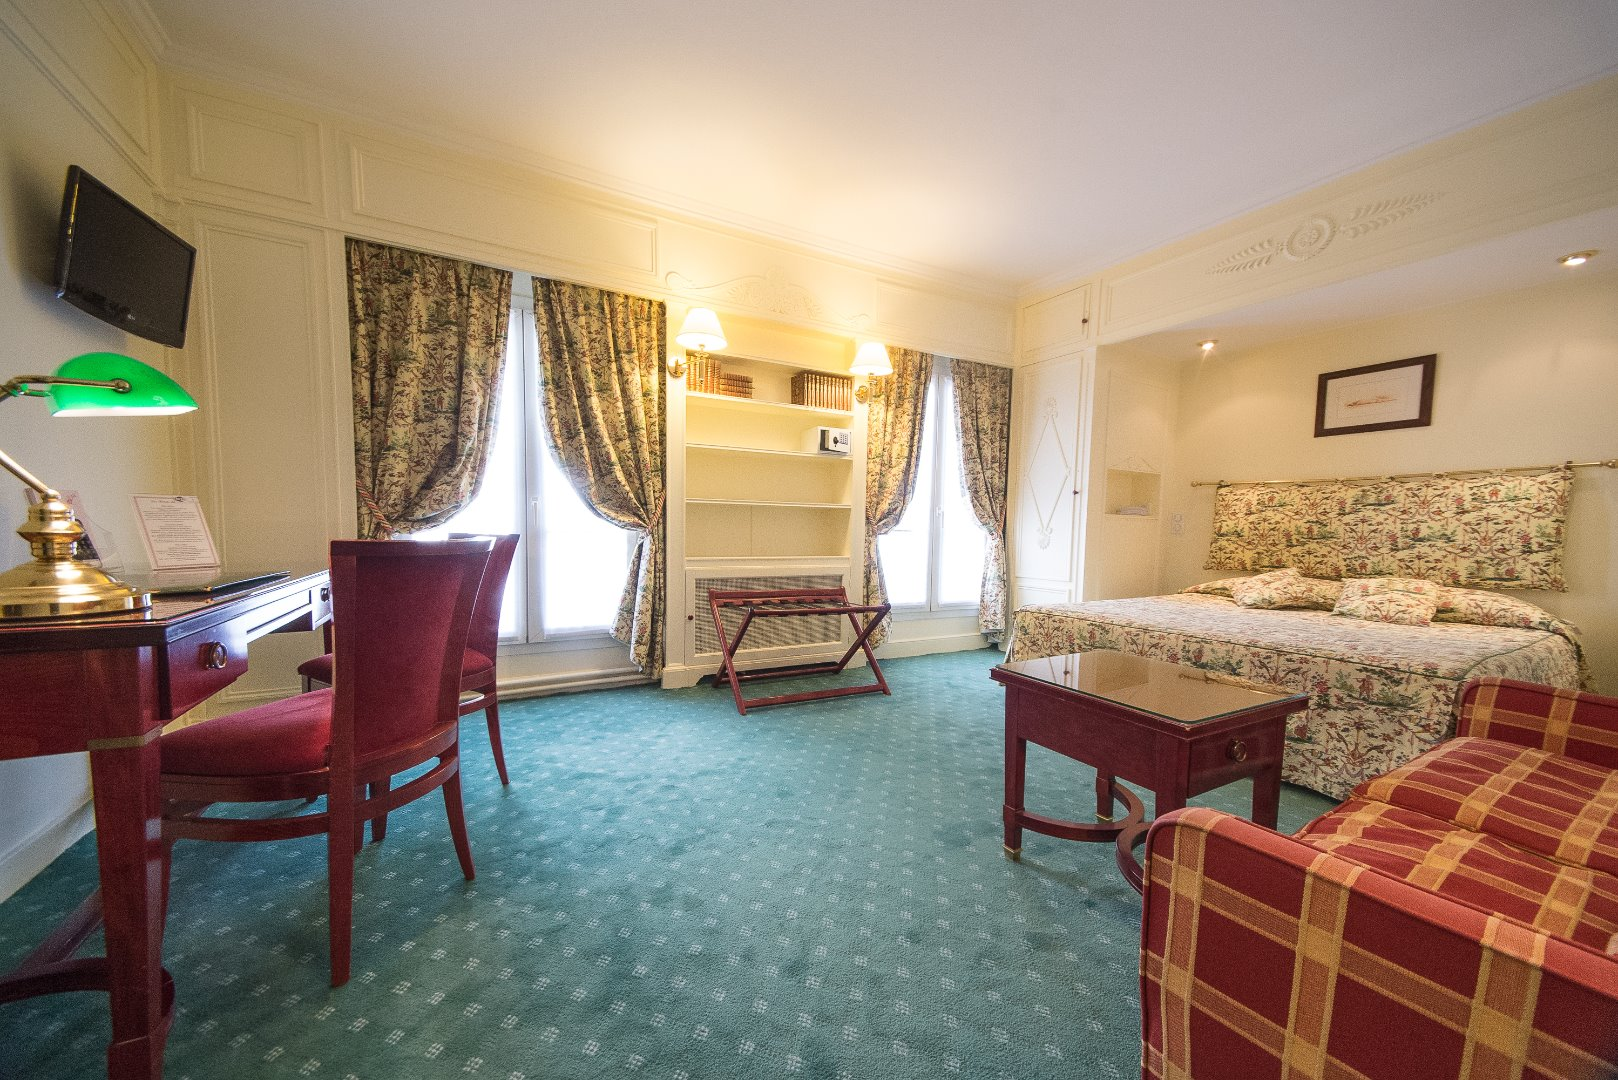 Best Available Rate Bed and Breakfast, includes complimentary WIFI in entire areas of the hotel